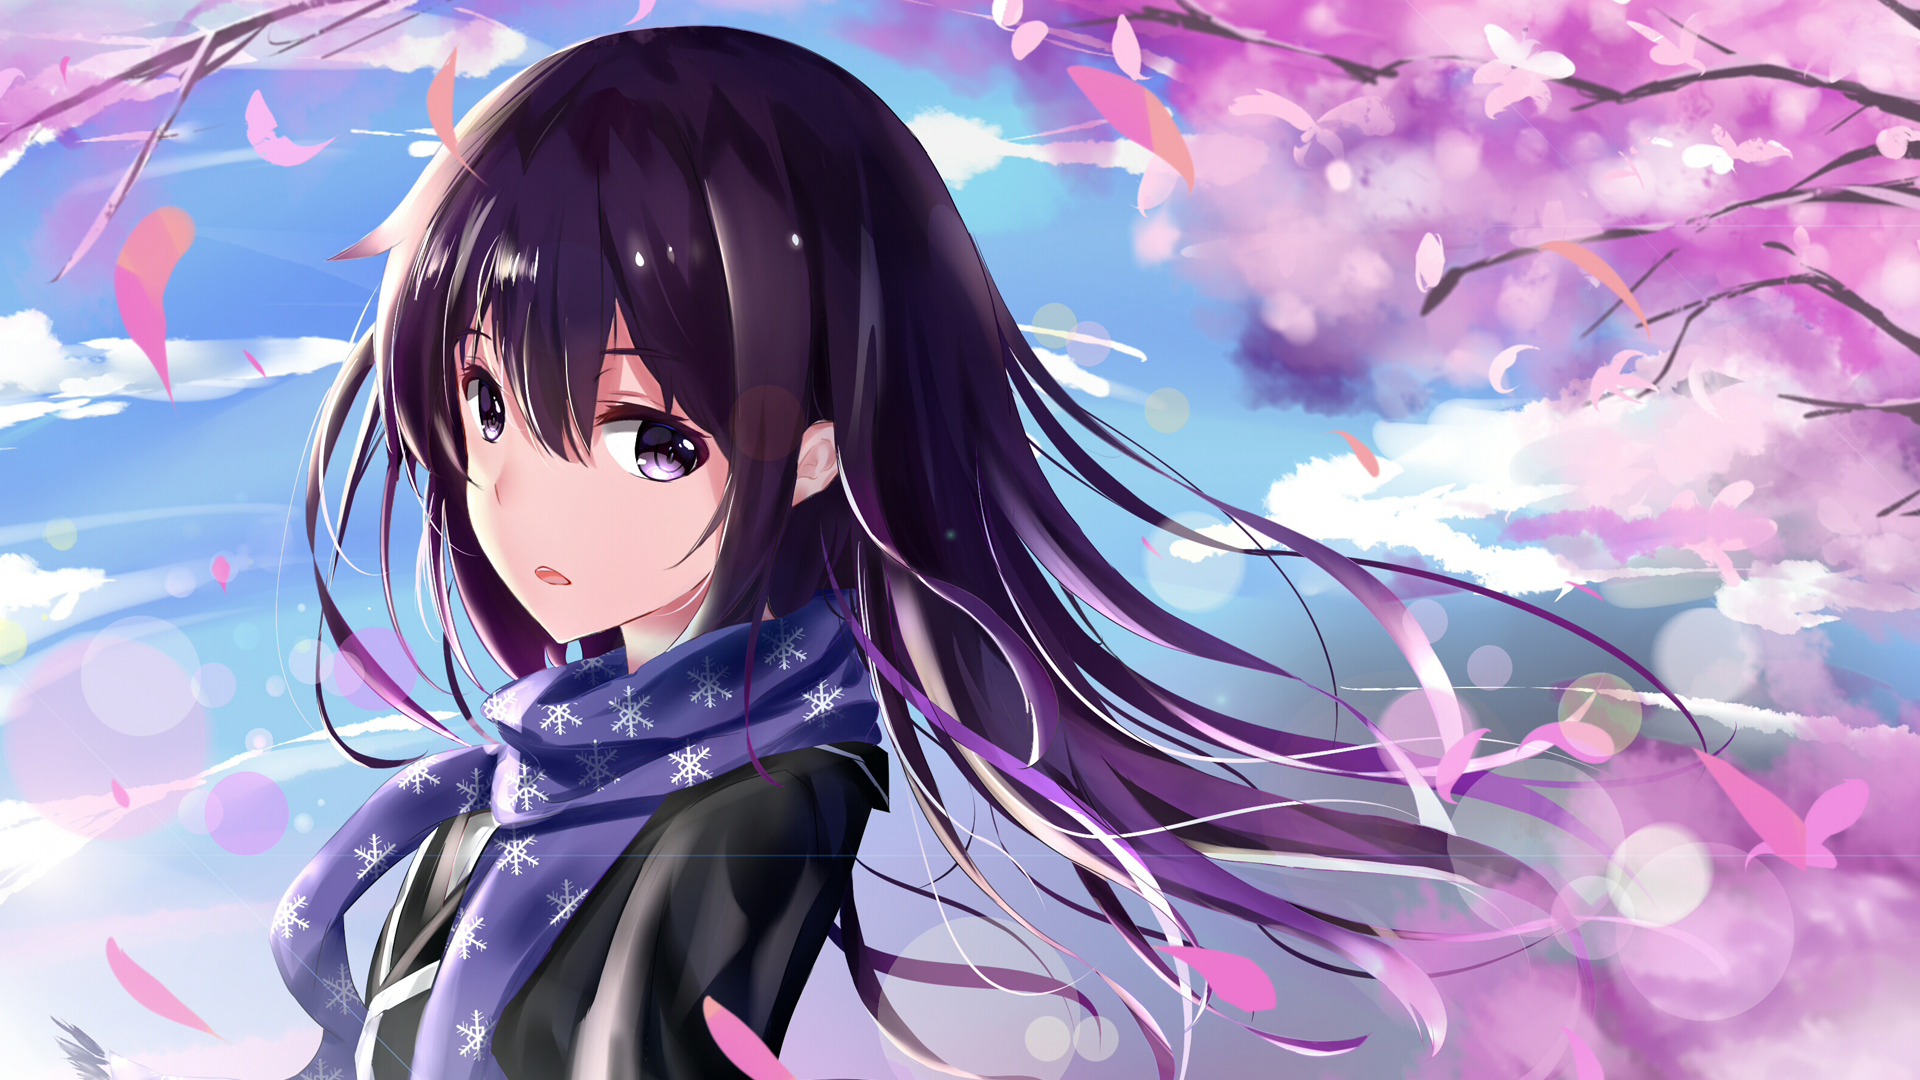 Anime - My Teen Romantic Comedy SNAFU  Yukino Yukinoshita Blossom Purple Hair Long Hair Scarf Purple Eyes Girl Wallpaper